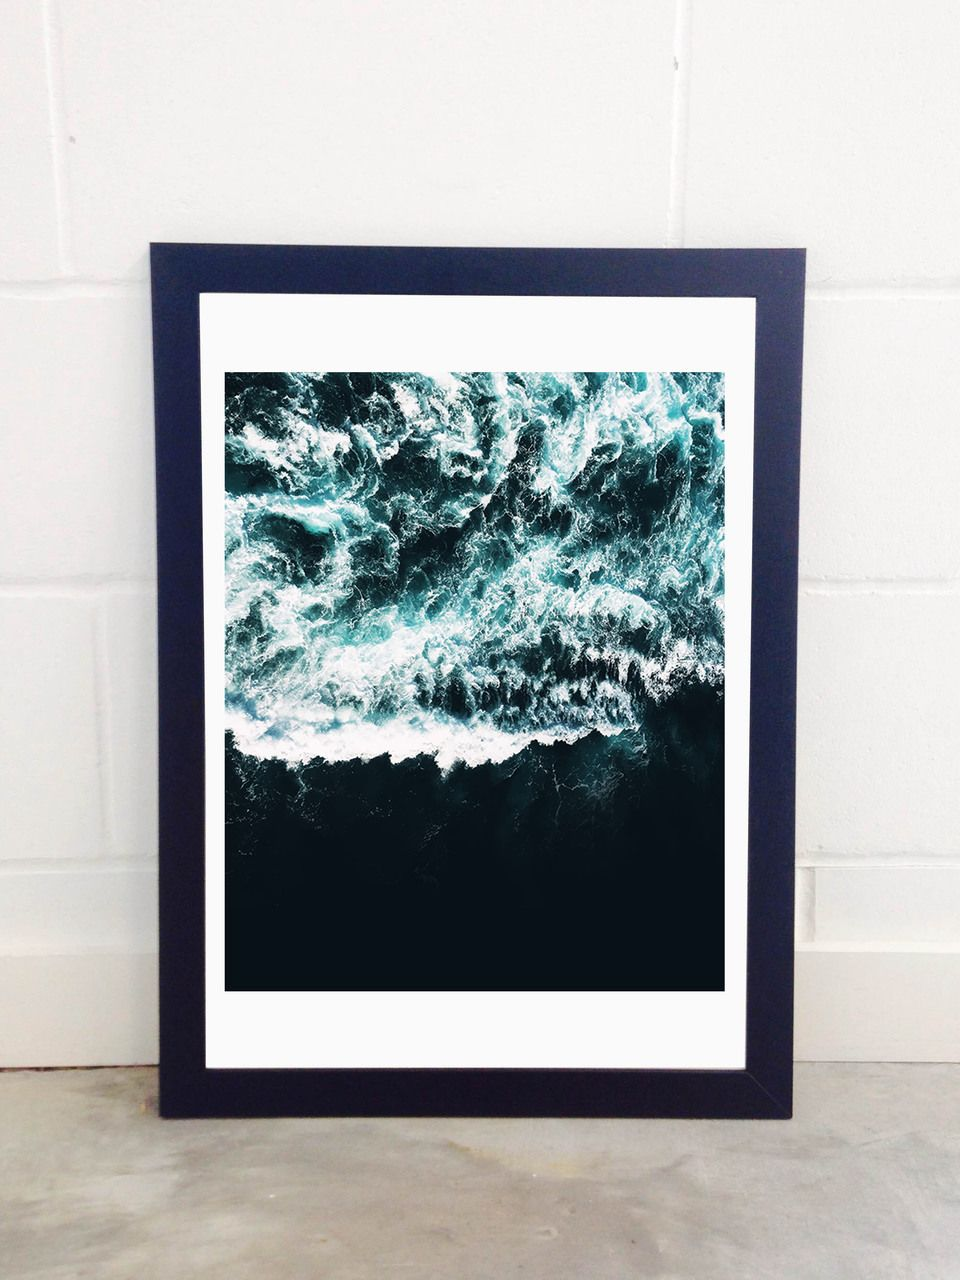 East End Prints - Oceanholic, £19.95 (http://www.eastendprints.co.uk/products/oceanholic.html)